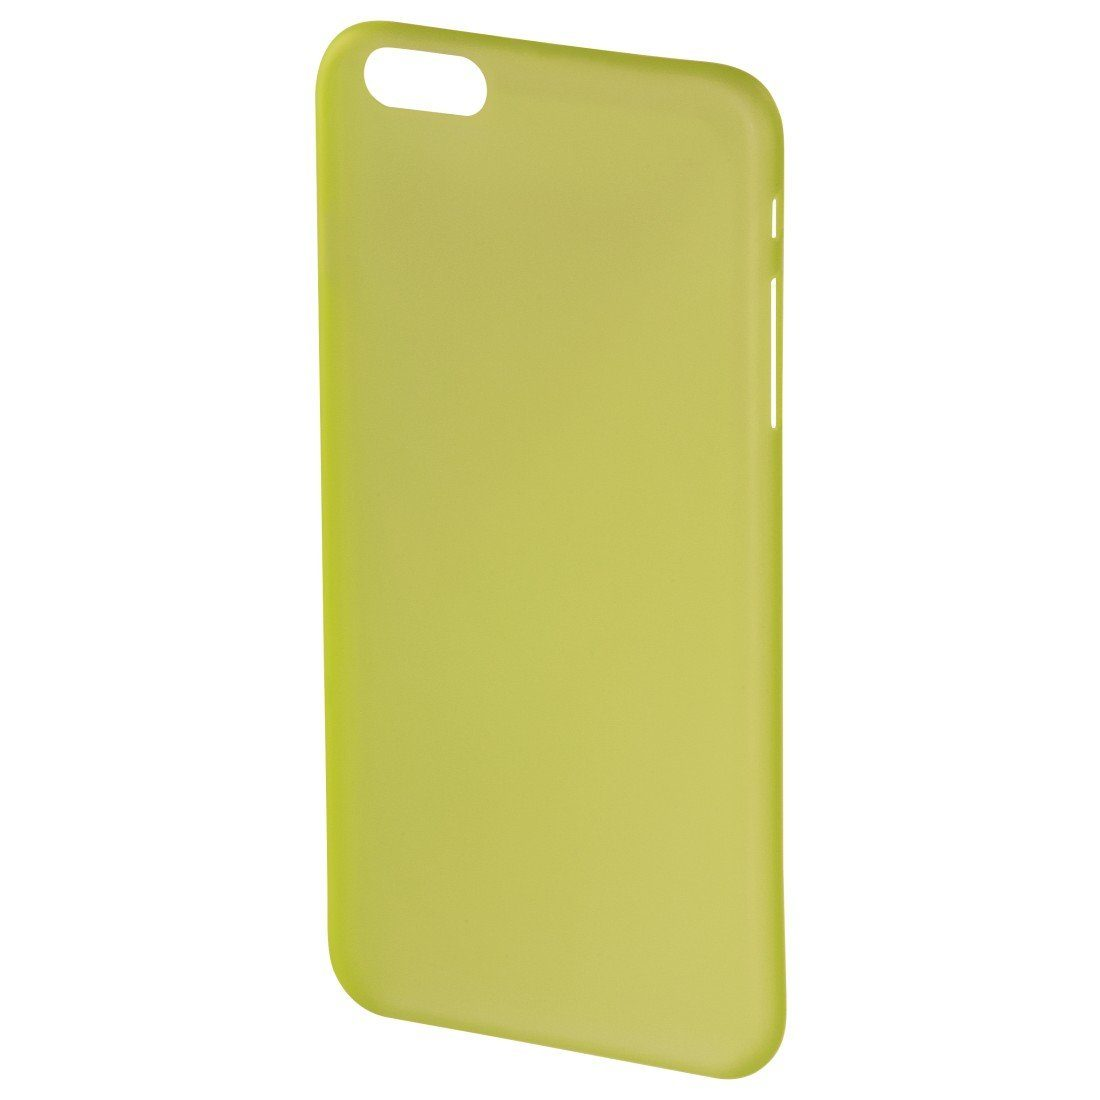 Hama Cover Ultra Slim für Apple iPhone 6 Plus/6s Plus, Gelb